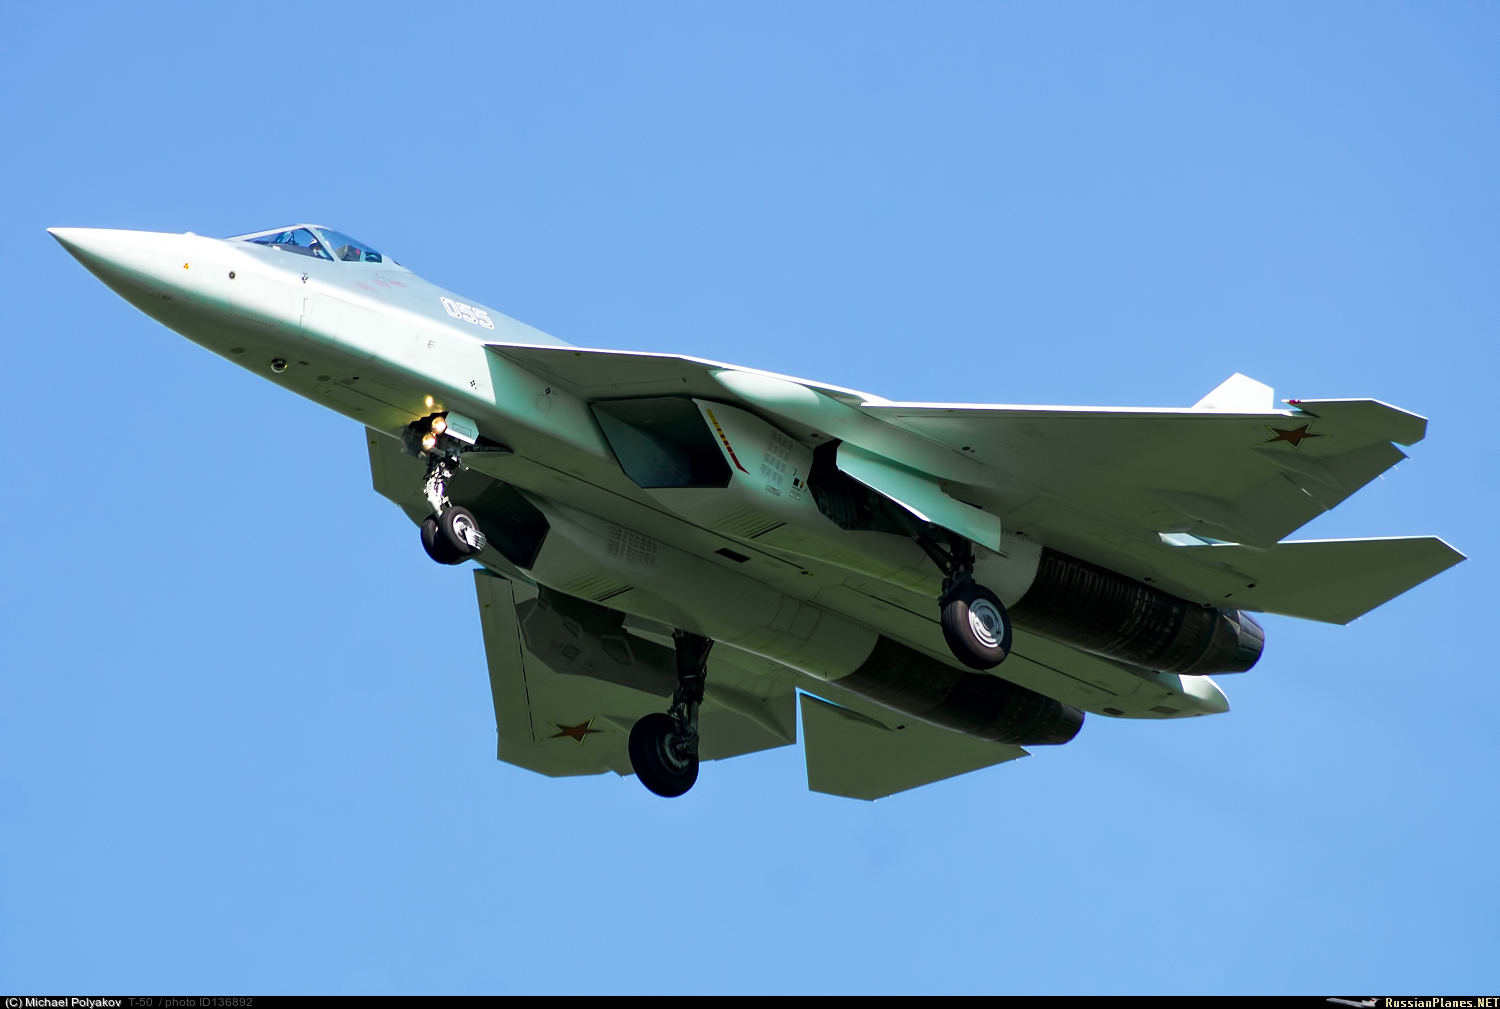 http://russianplanes.net/images/to137000/136892.jpg